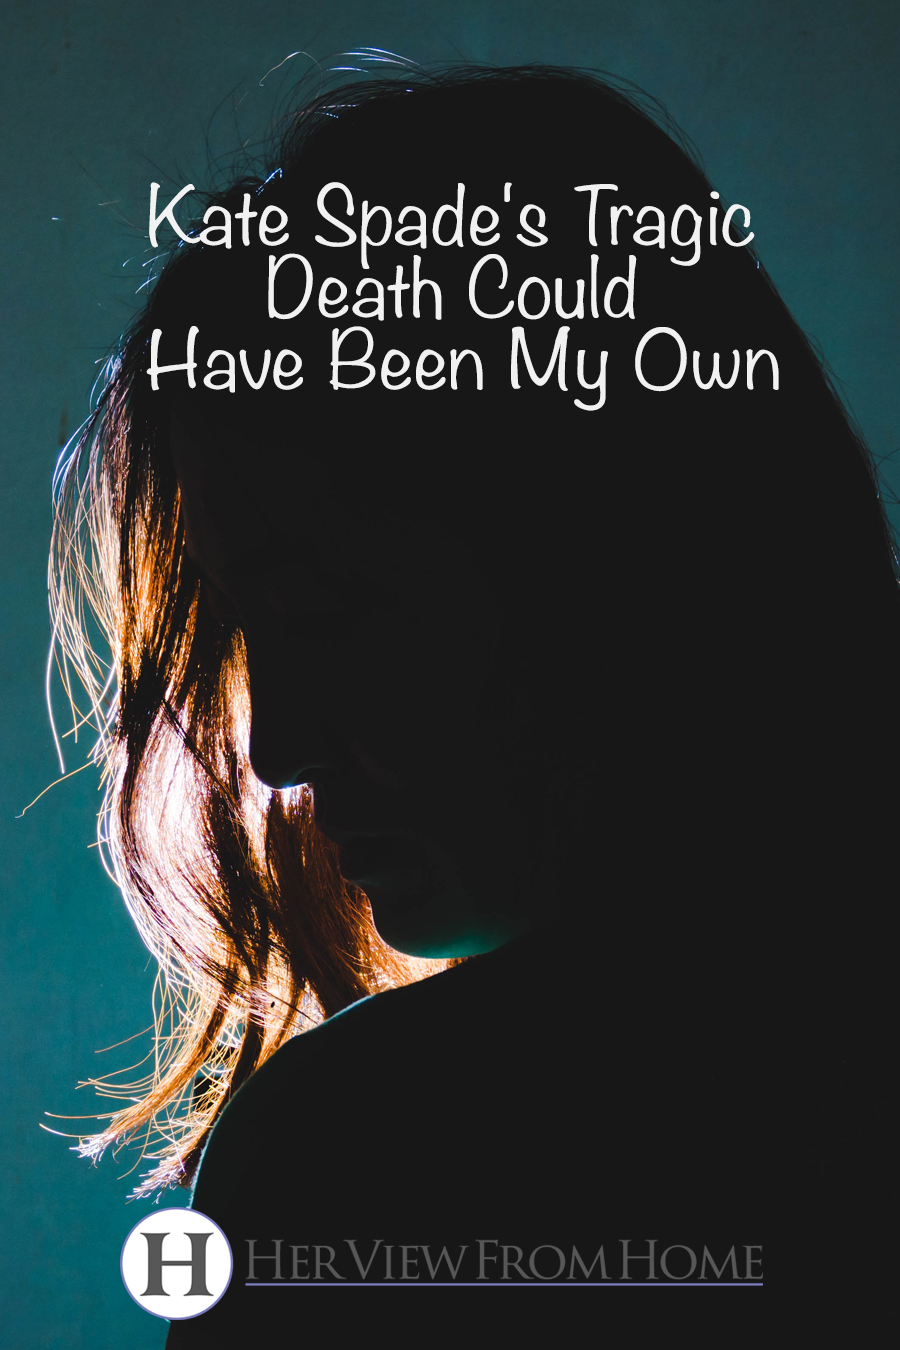 Kate Spade's Tragic Death Could Have Been My Own www.herviewfromhome.com #suicide #katespade #depression